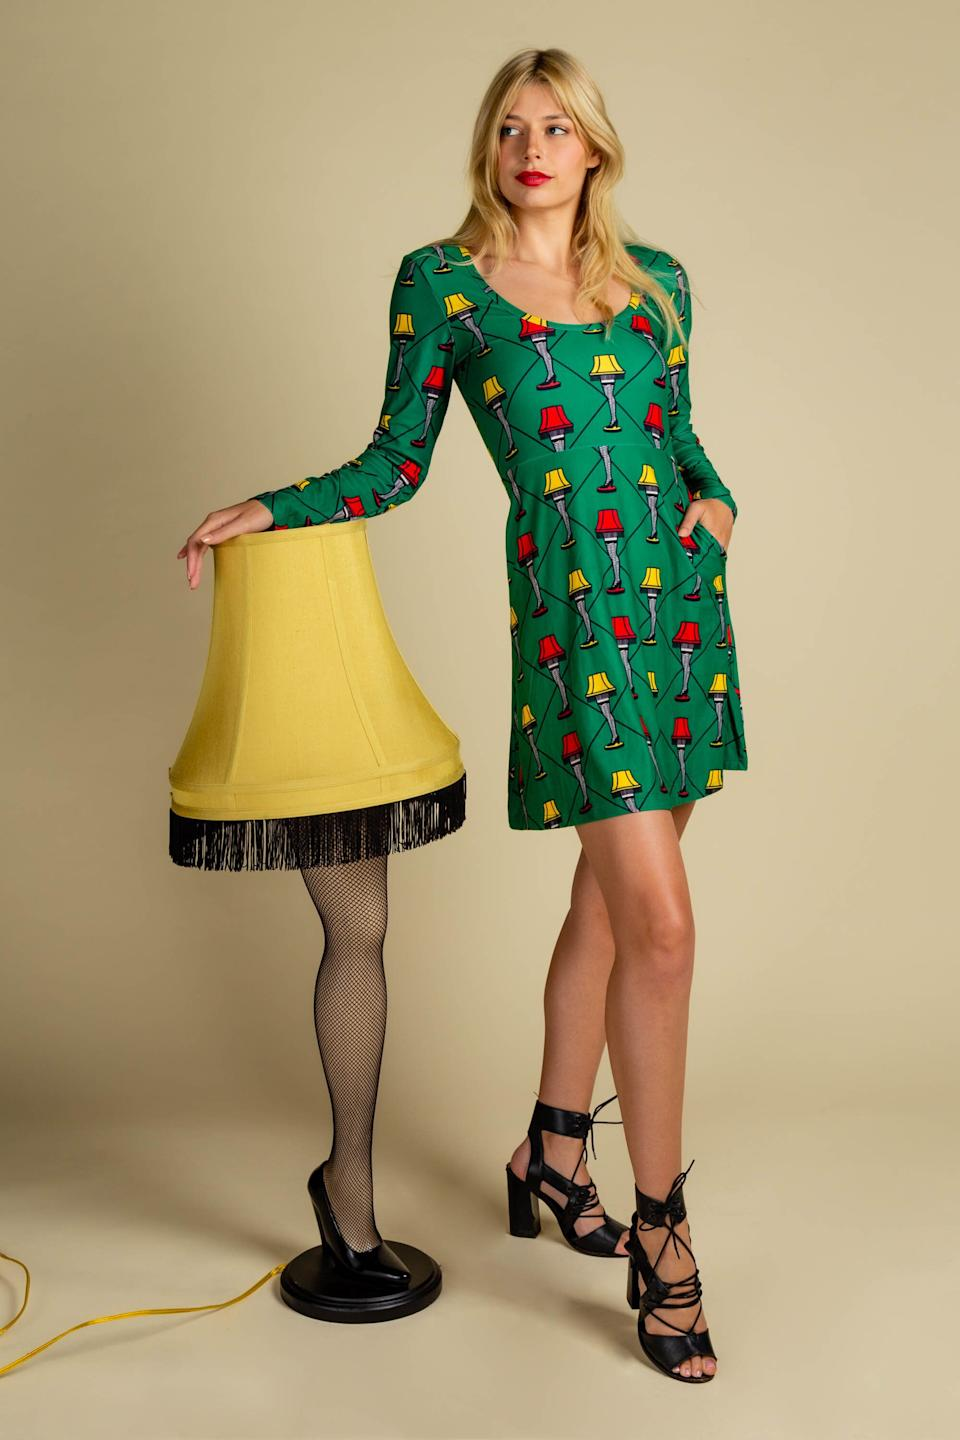 """Looking for something stylish for the """"Christmas Story"""" fan in your life? This <a href=""""https://www.shinesty.com/products/the-fragile-skater-dress"""" target=""""_blank"""" rel=""""noopener noreferrer"""">skater dress with """"fragile leg lamps""""</a> will be treated as a major award, for sure."""